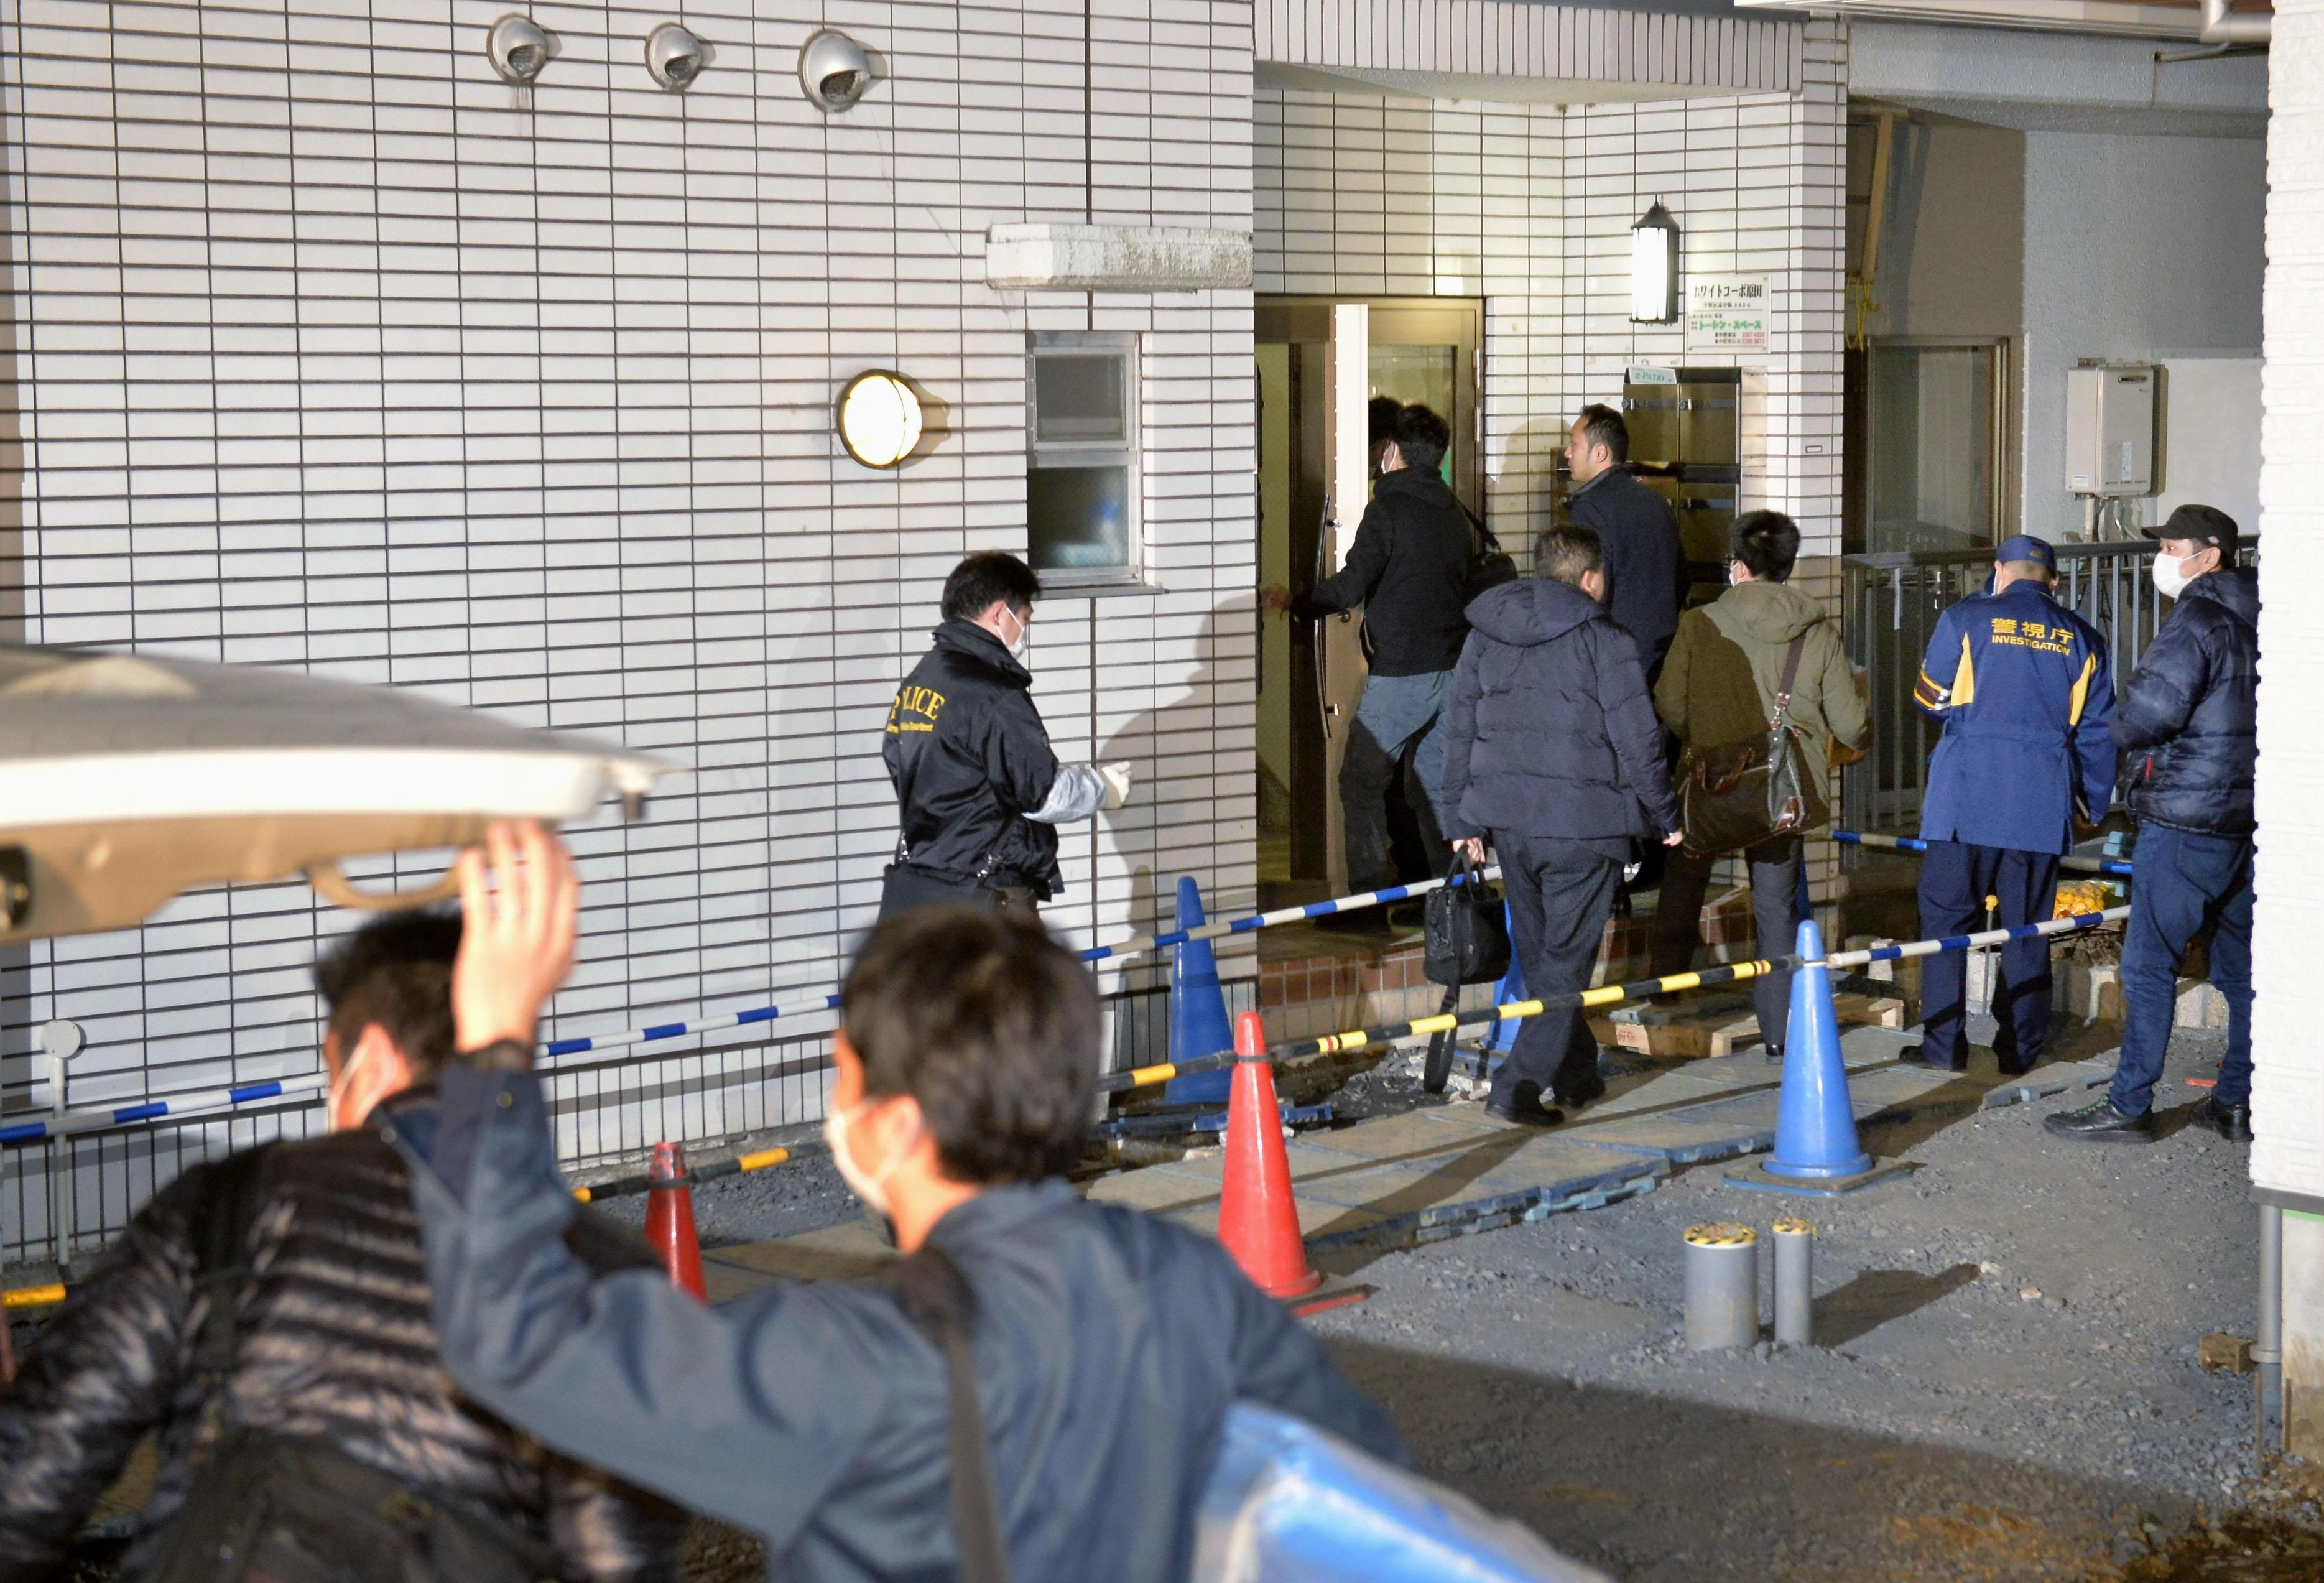 Police investigators search the apartment of Kabu Terauchi in Nakano Ward, Tokyo, early Monday. He is suspected of kidnapping a 15-year-old girl two years ago and confining her until she managed to flee Sunday. | KYODO